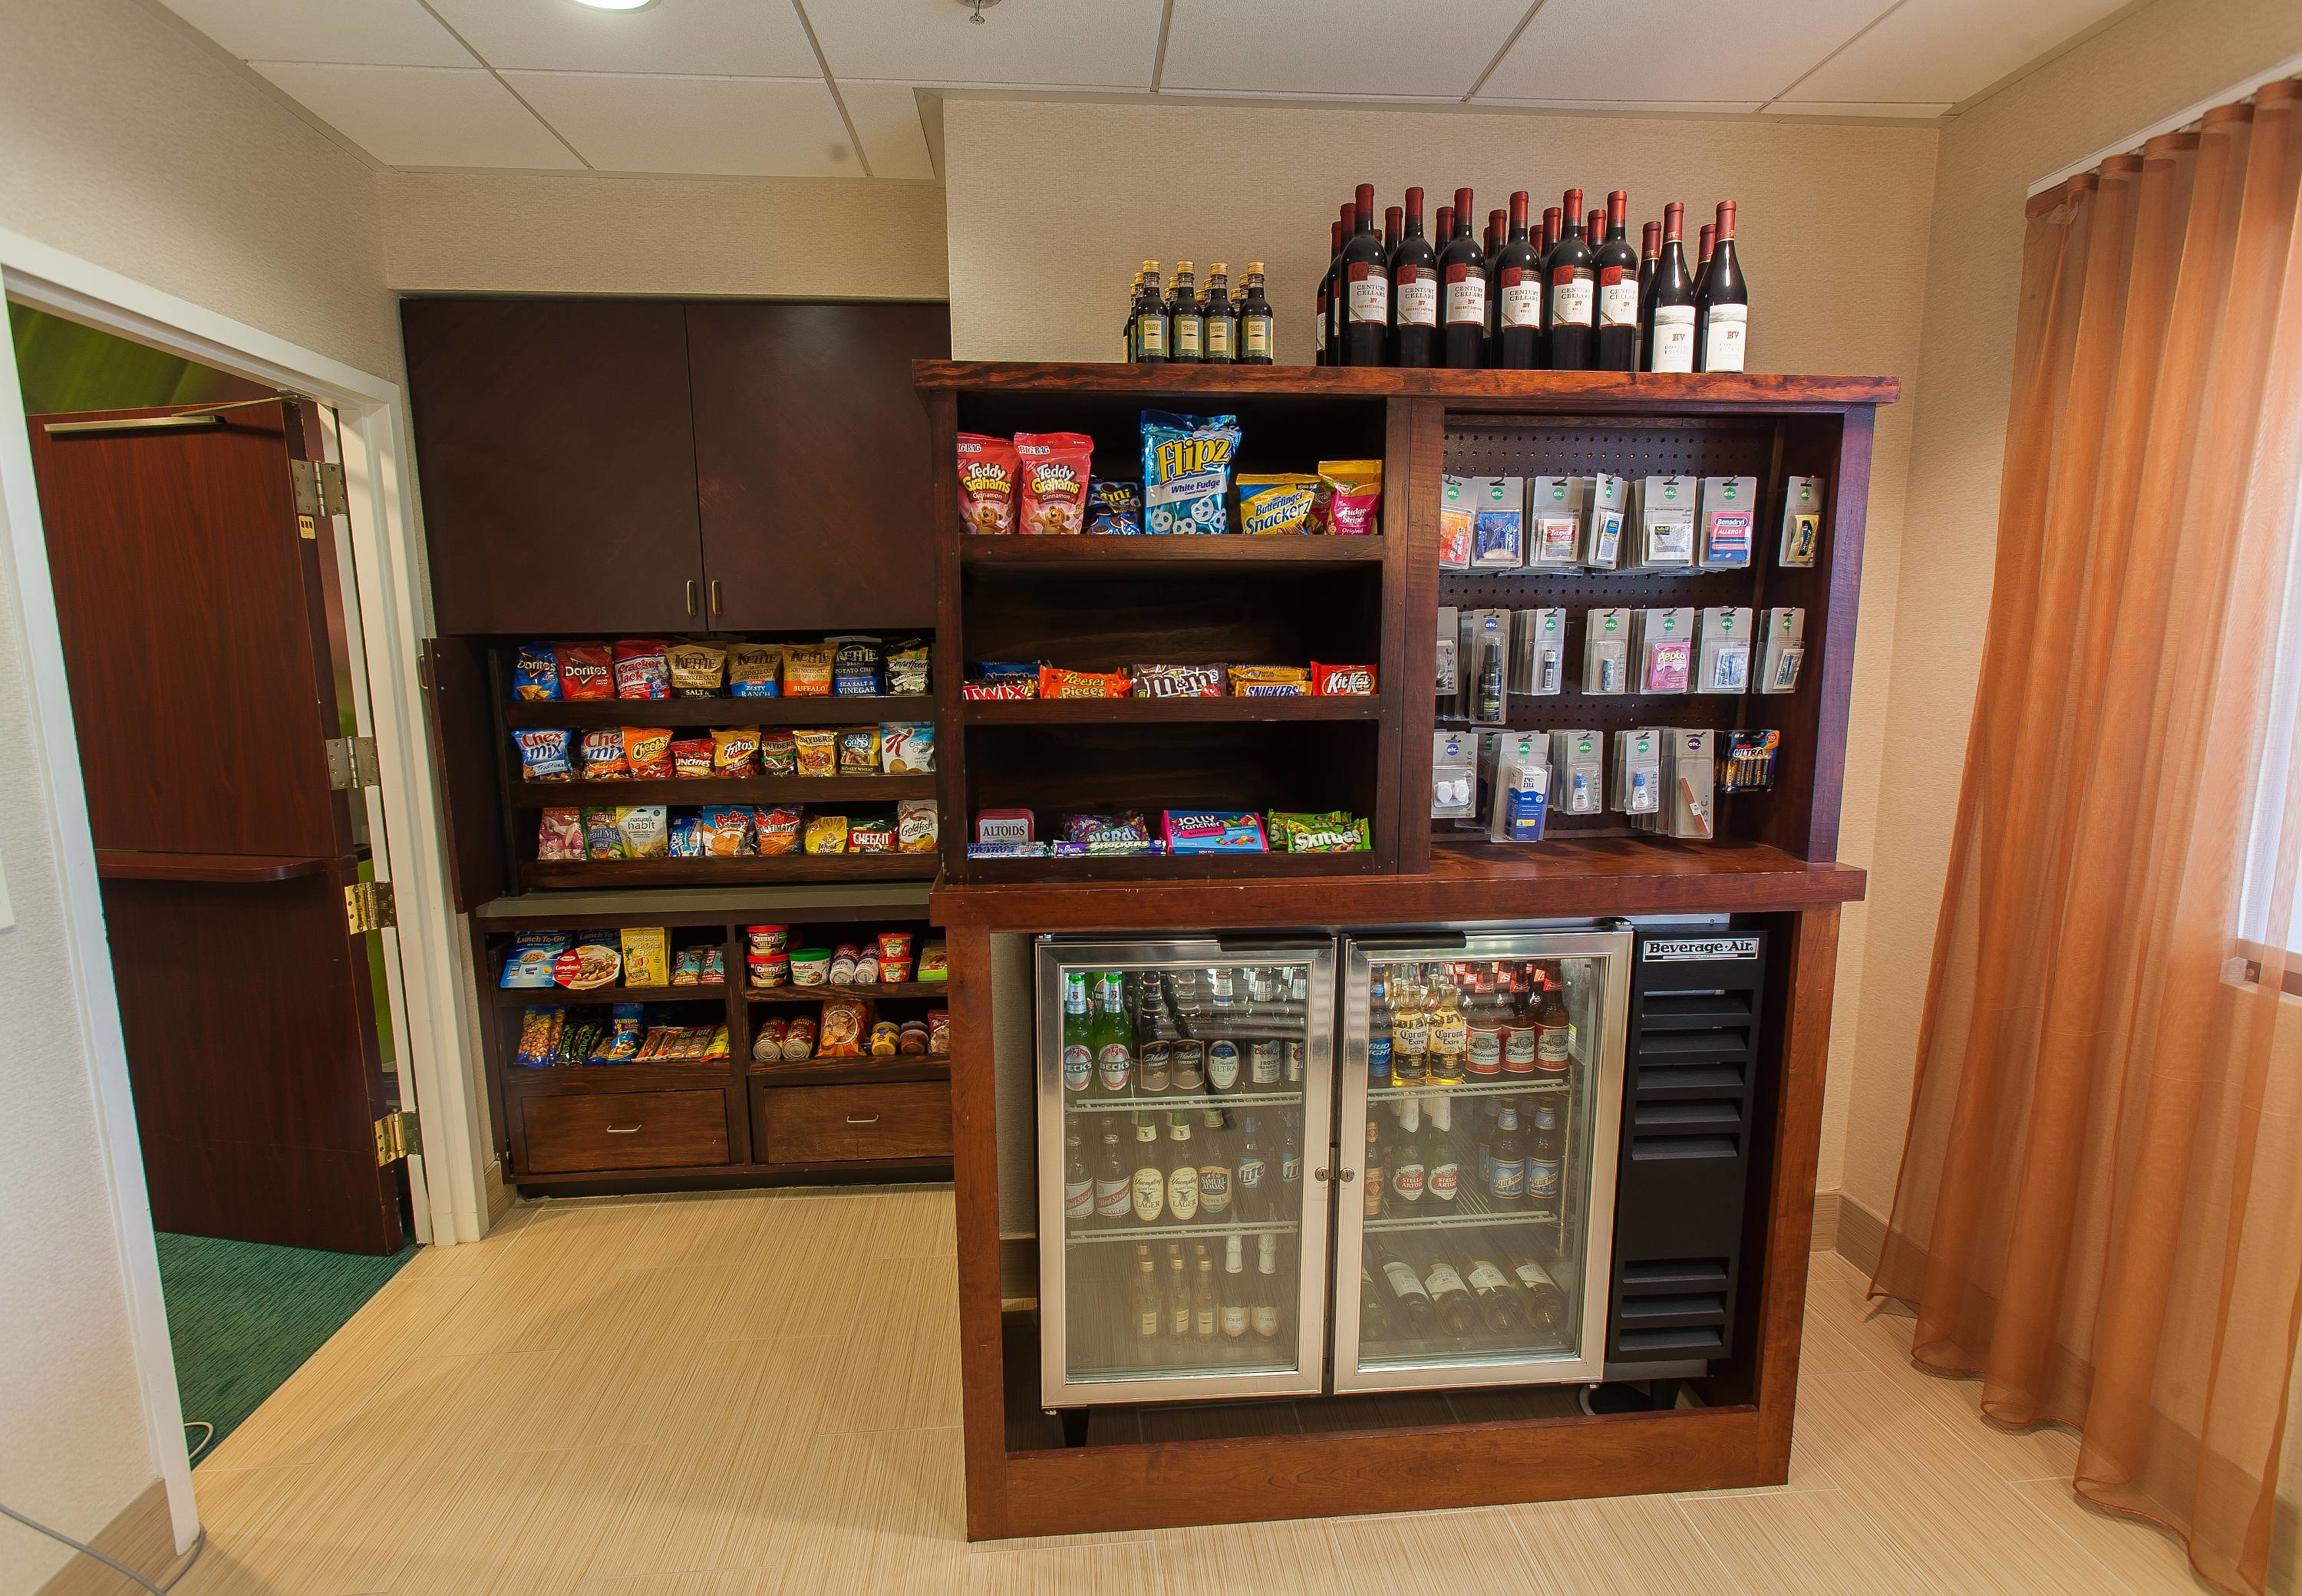 SpringHill Suites by Marriott Florence image 15